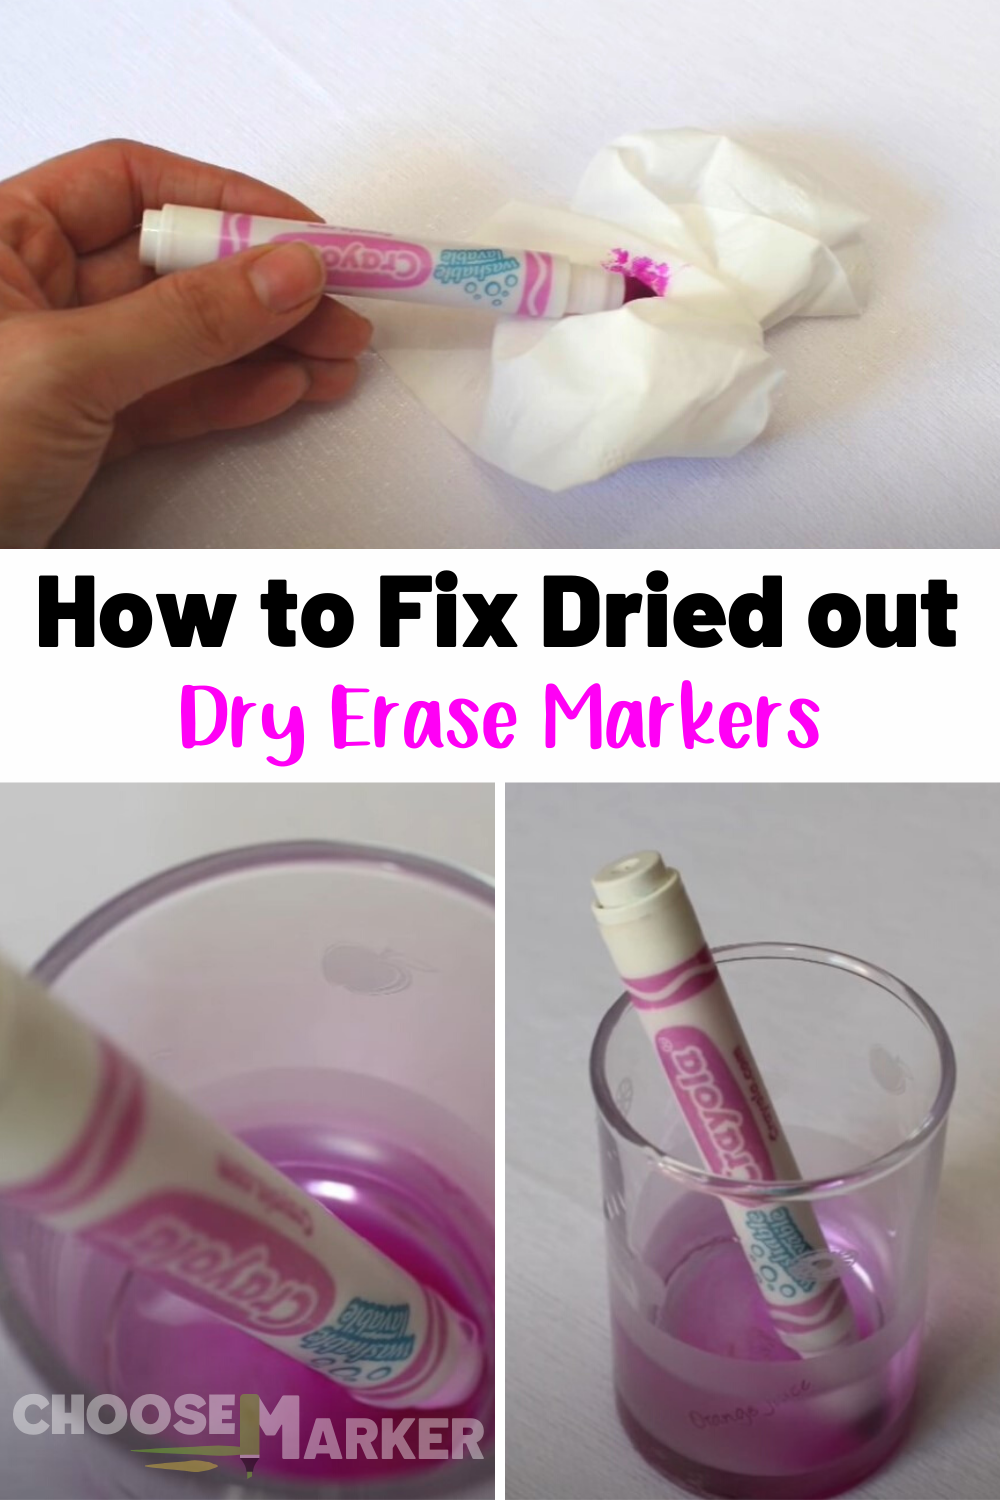 How To Fix Dried Out Dry Erase Markers Reviving Dried Out Markers Easy Steps Dry Erase Markers Markers Expo Marker